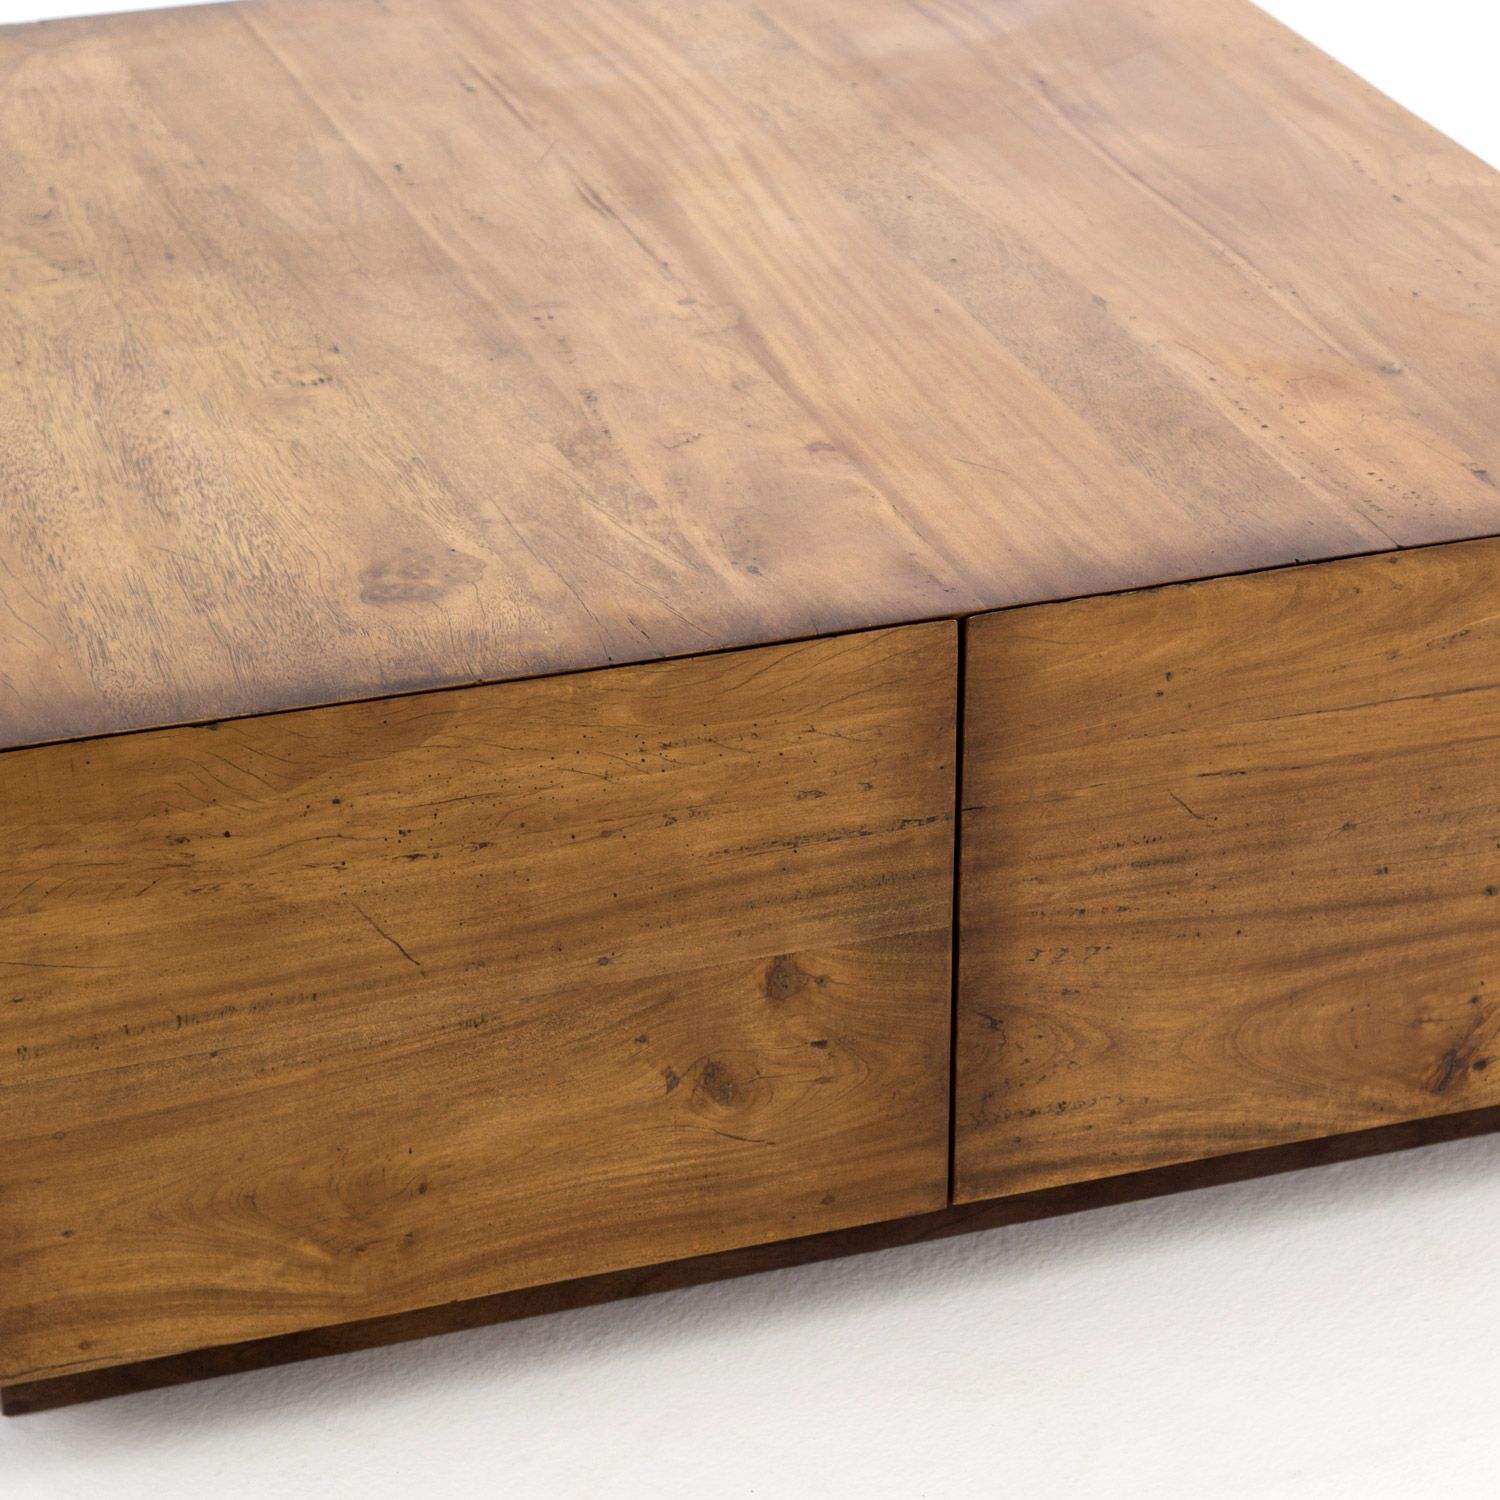 Duncan Storage Coffee Table: Four Hands Harmon Duncan Coffee Table